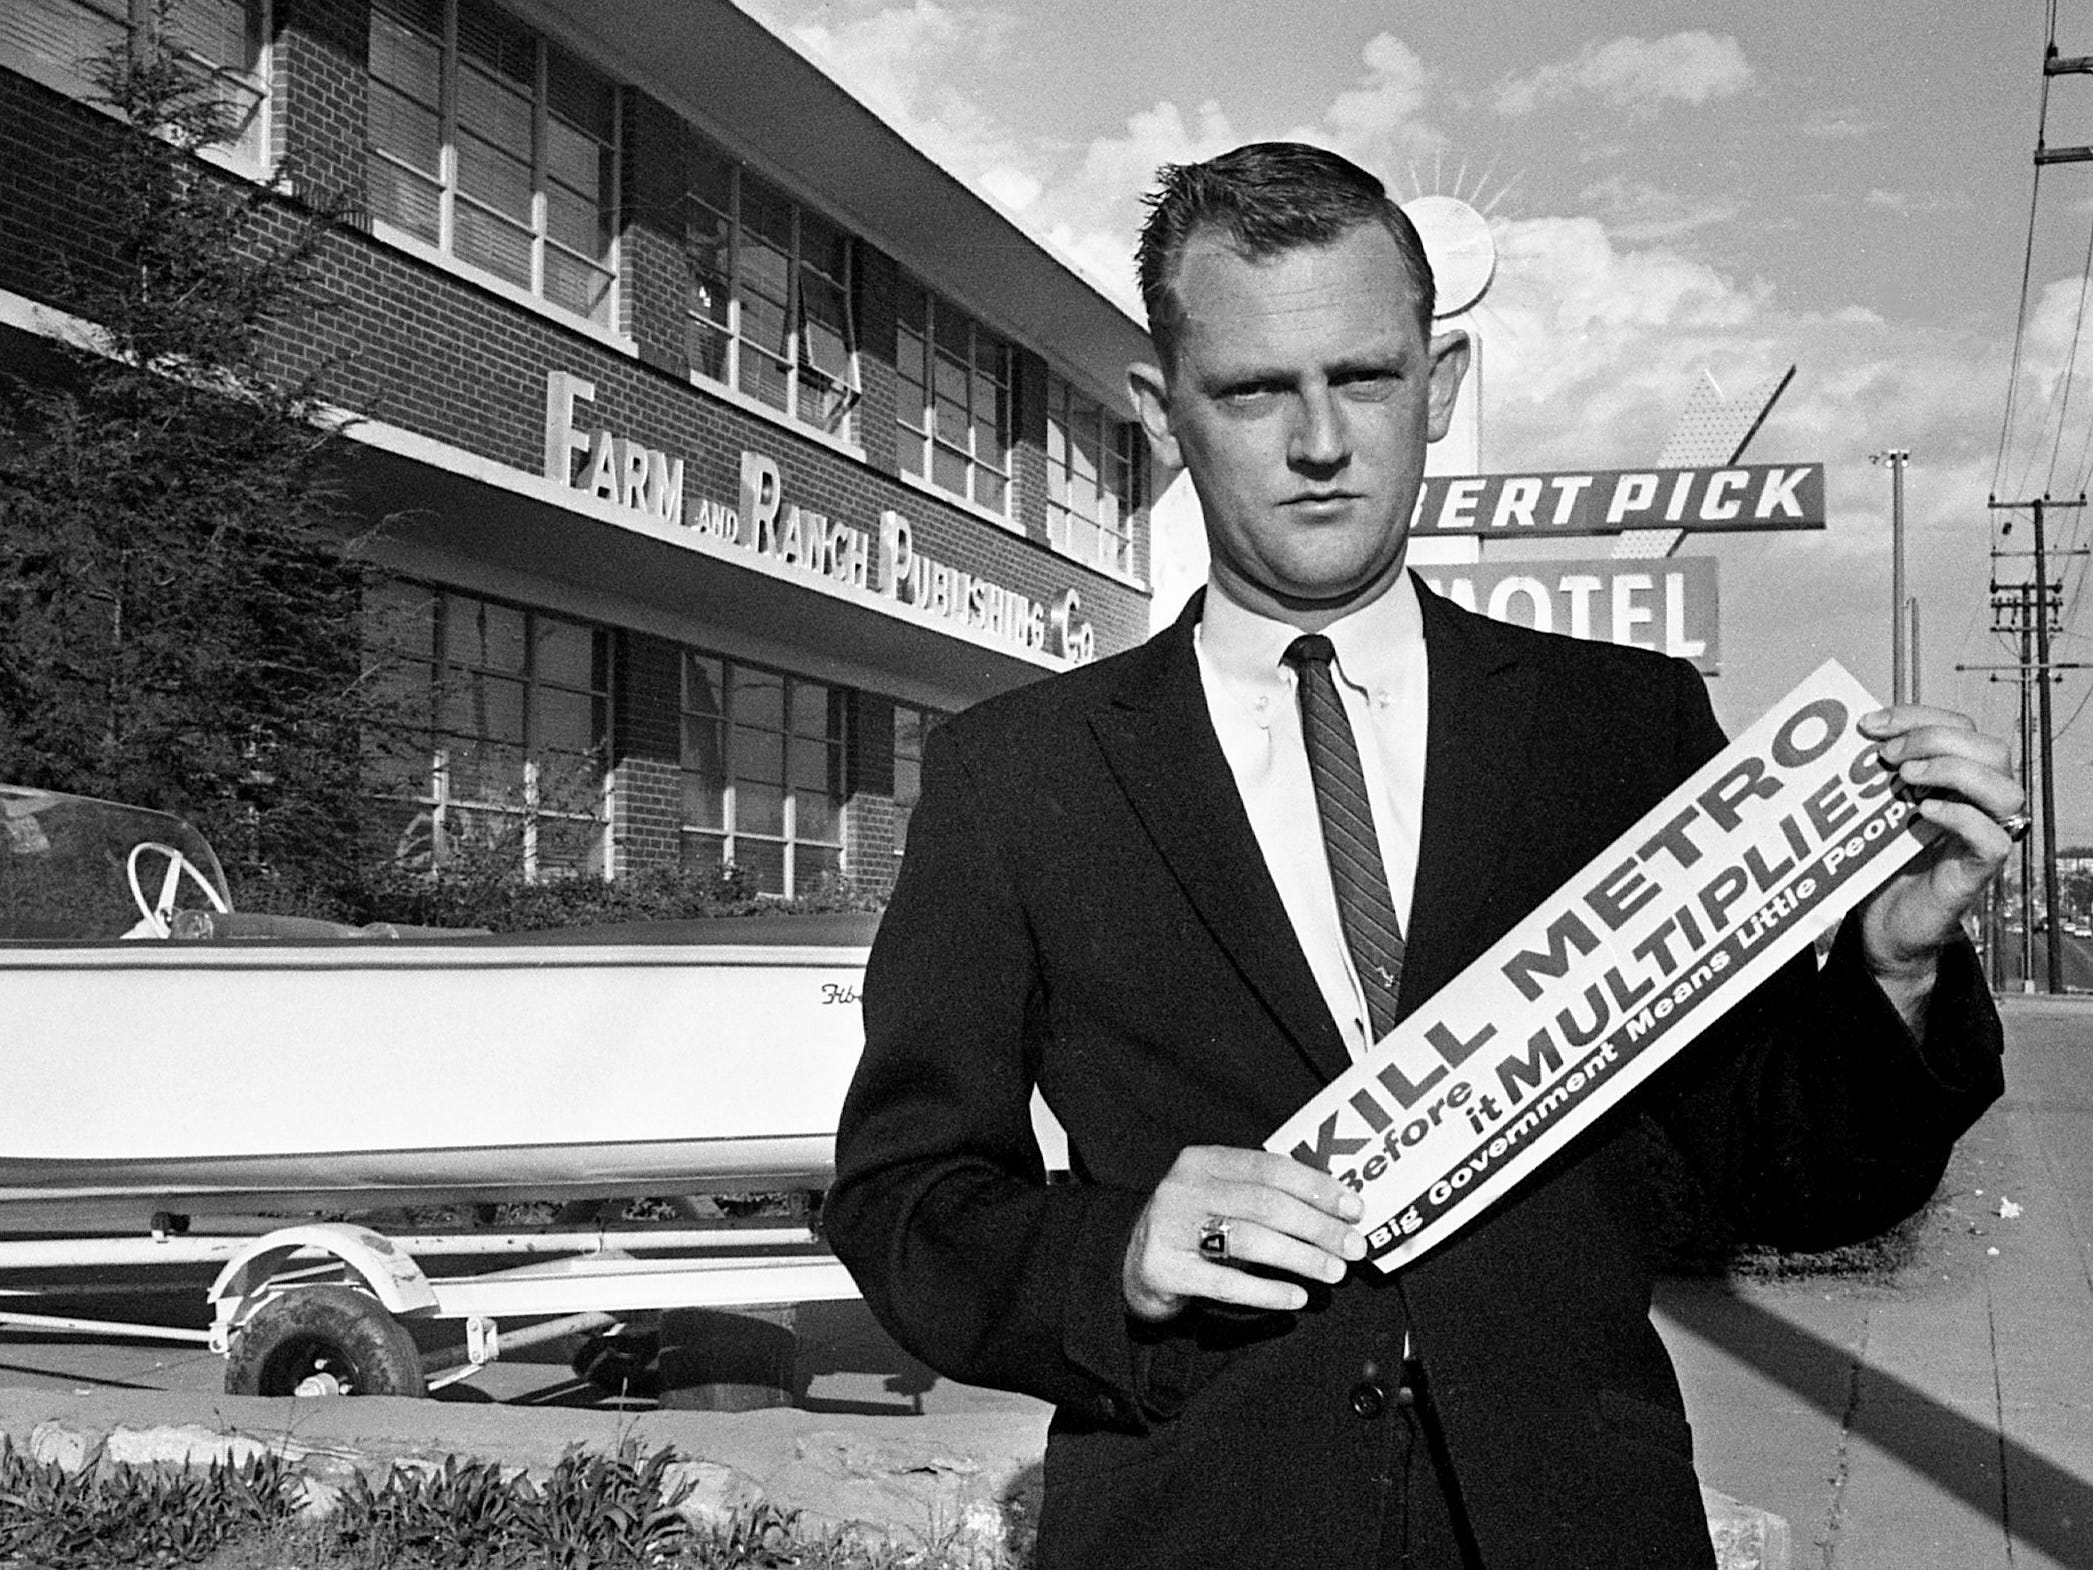 "Rudy Abramson, reporter for The Nashville Tennessean, holds a ""Kill Metro"" bumper sticker given to him at Farm and Ranch Publishing Co. on May 3, 1962. Opponents of Nashville-Davidson County consolidated government, including elements of the ultra conservative John Birch Society, have started an early campaign against it with bumper stickers."